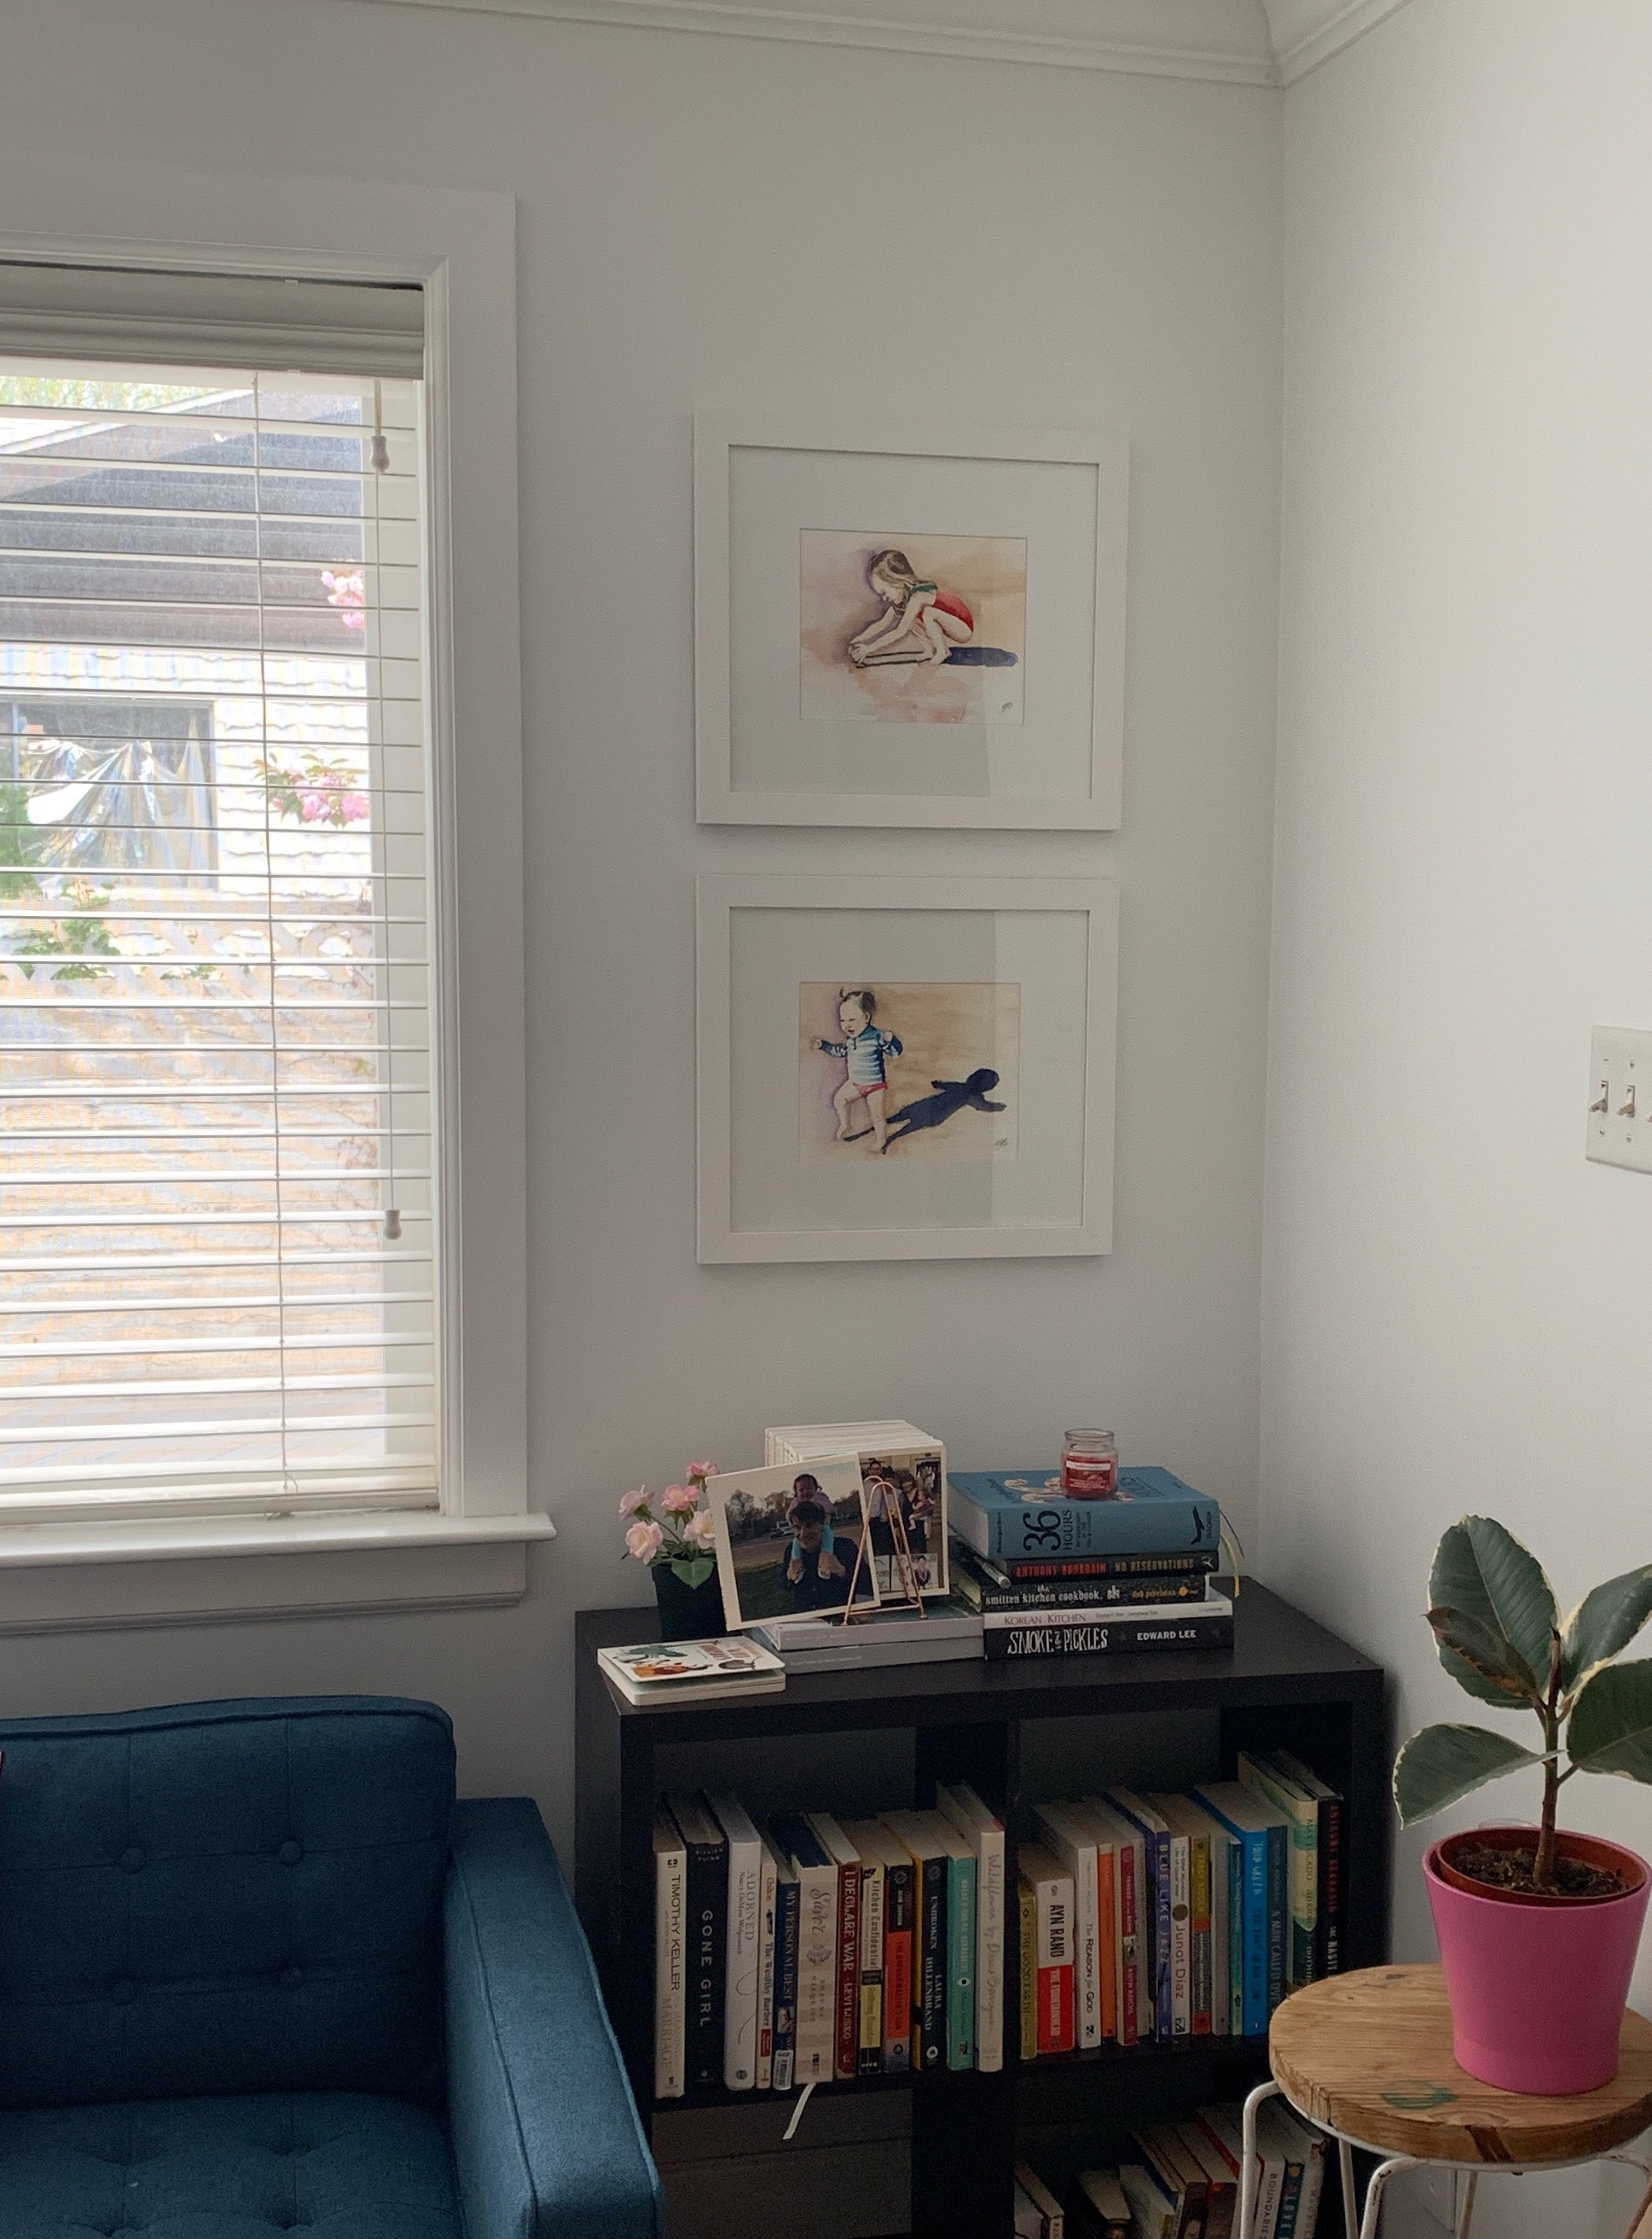 This is how one of my collectors chose to display the  personalized art  I created of his two young daughters.